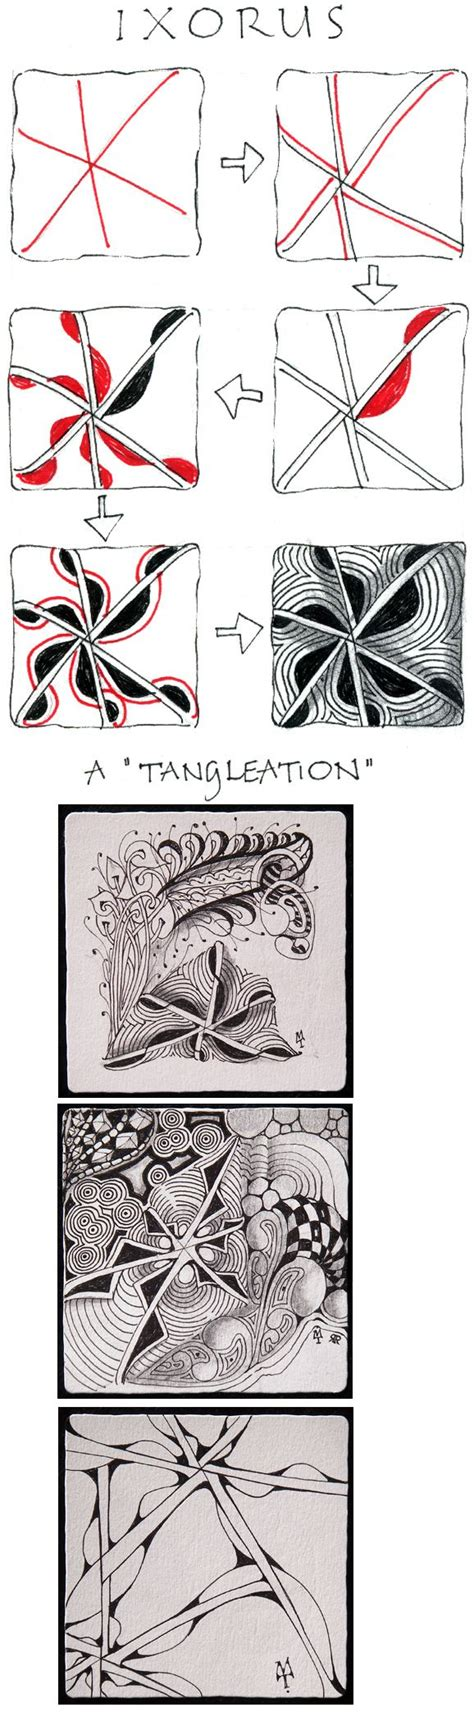 fescue zentangle pattern ixorus official zentangle with exles variations art